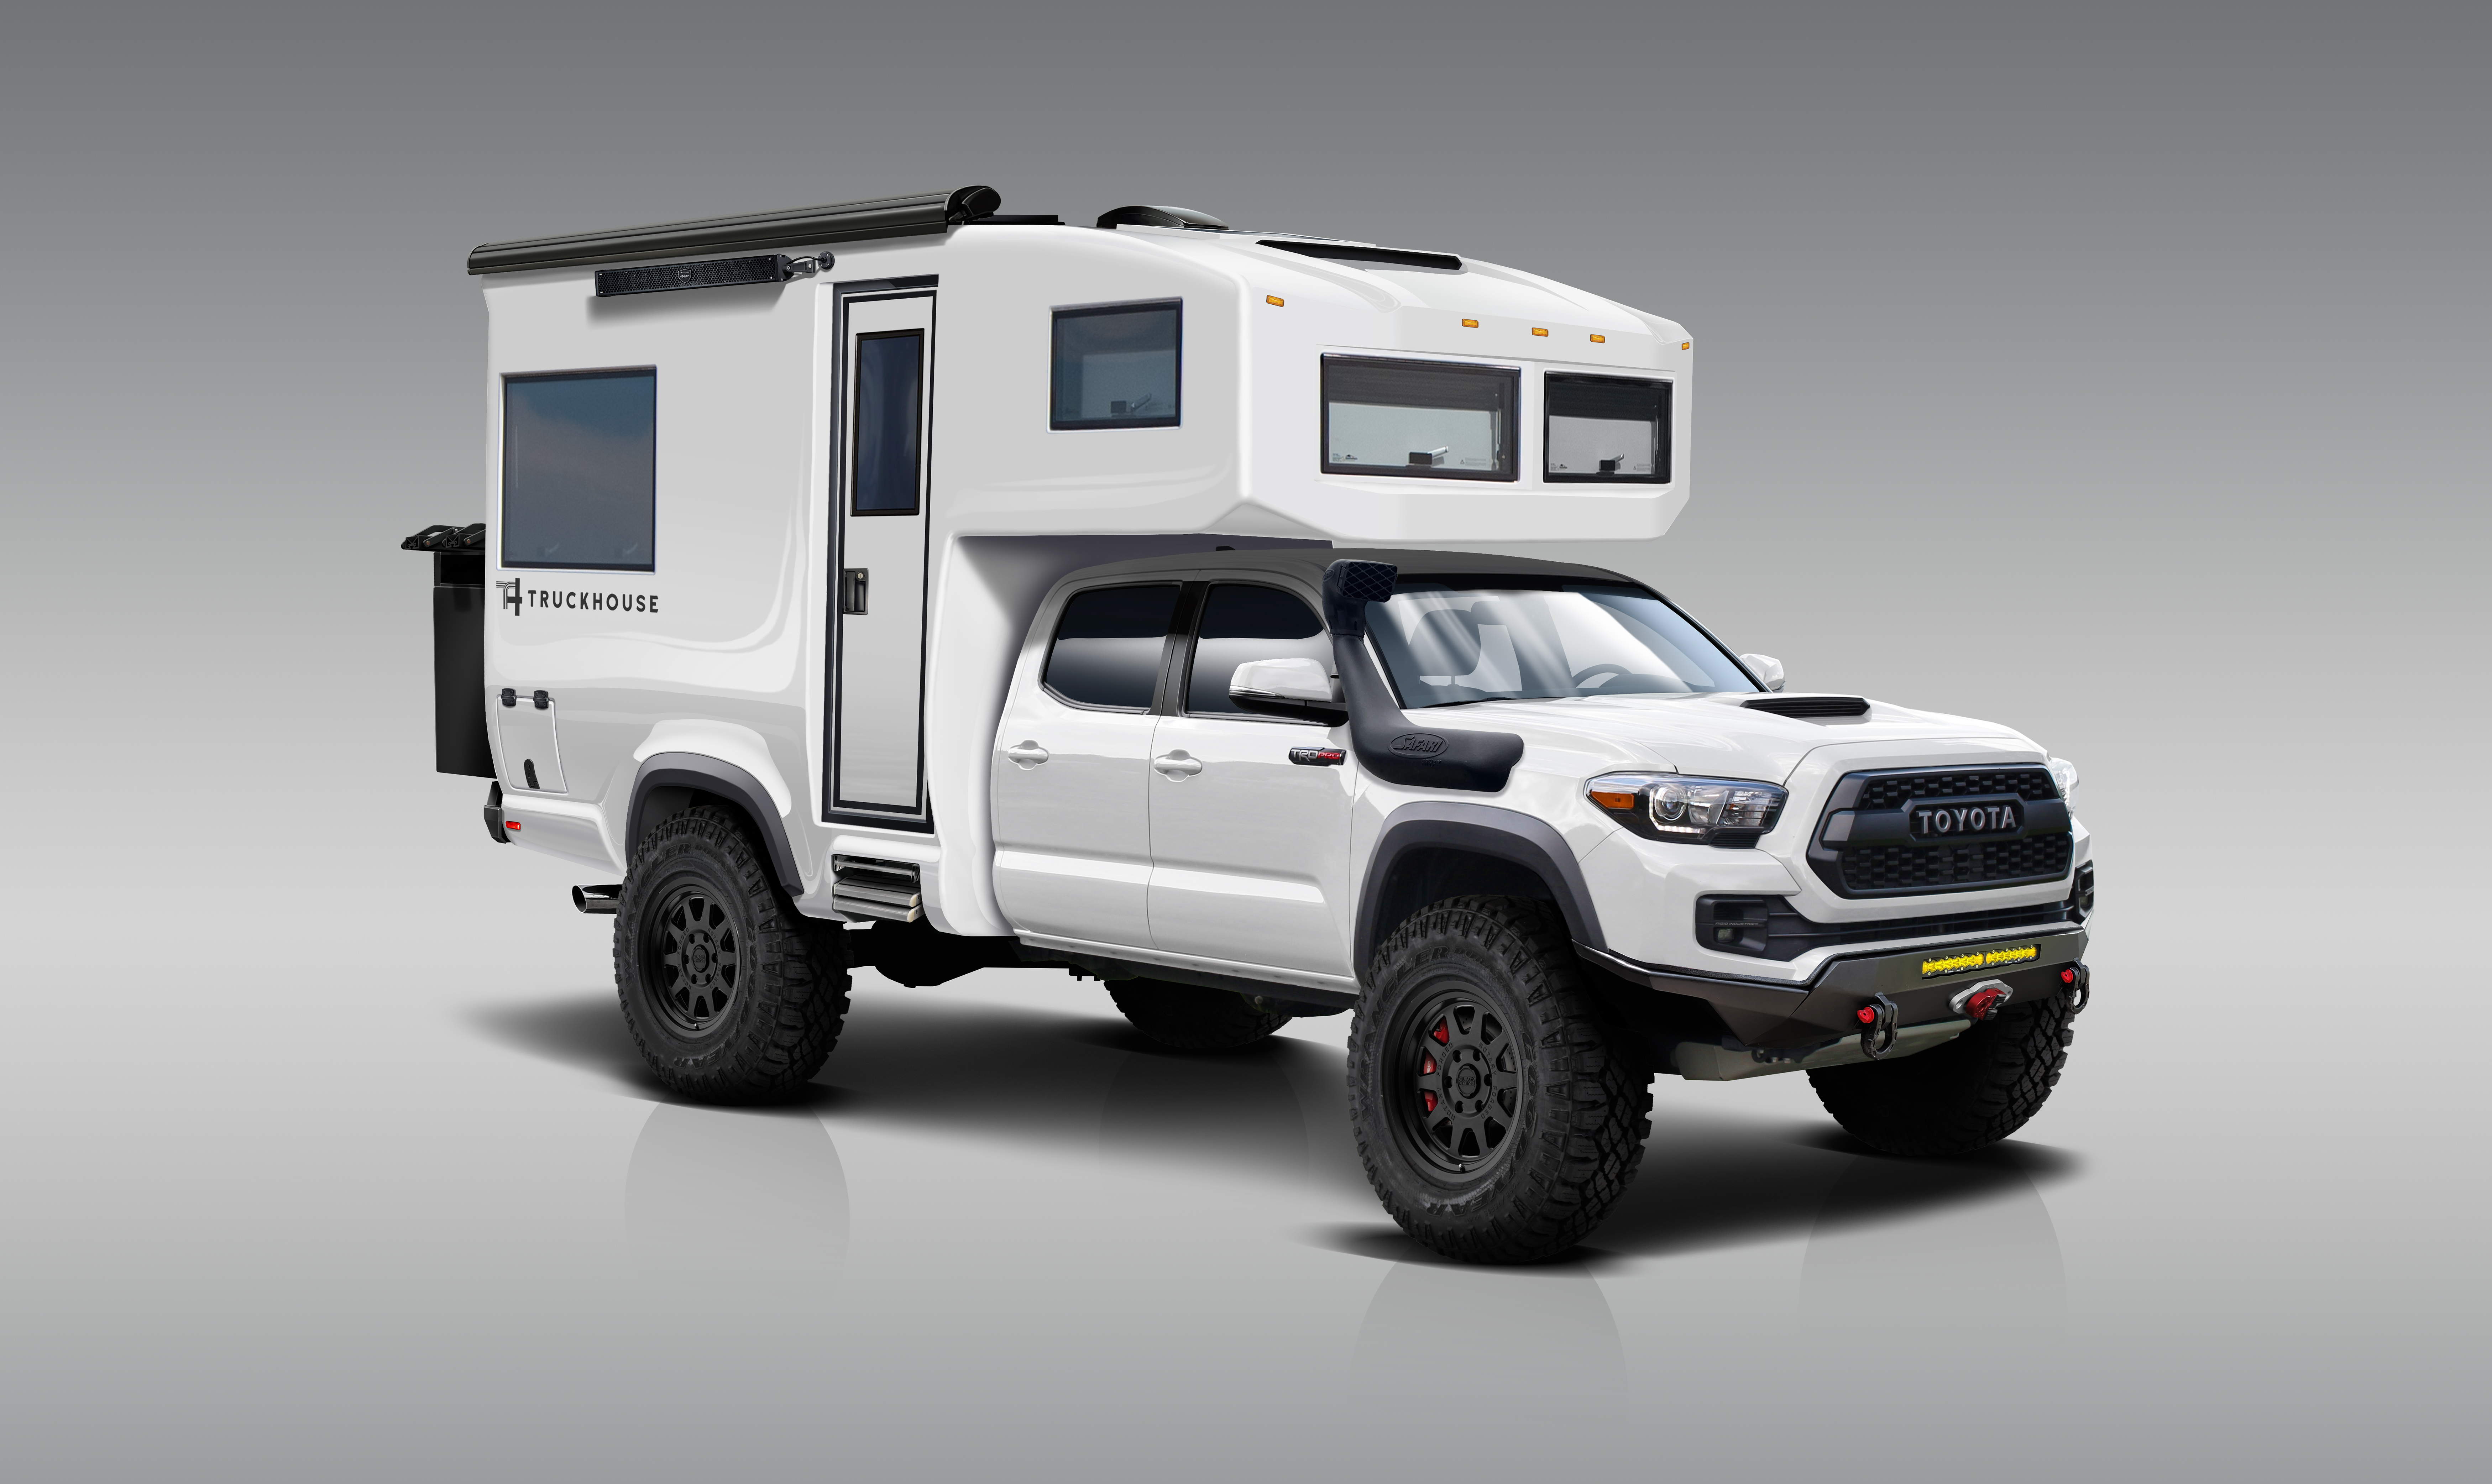 Truckhouse Bct The Luxury Overland Tacoma Camper Of Your Dreams Gearjunkie